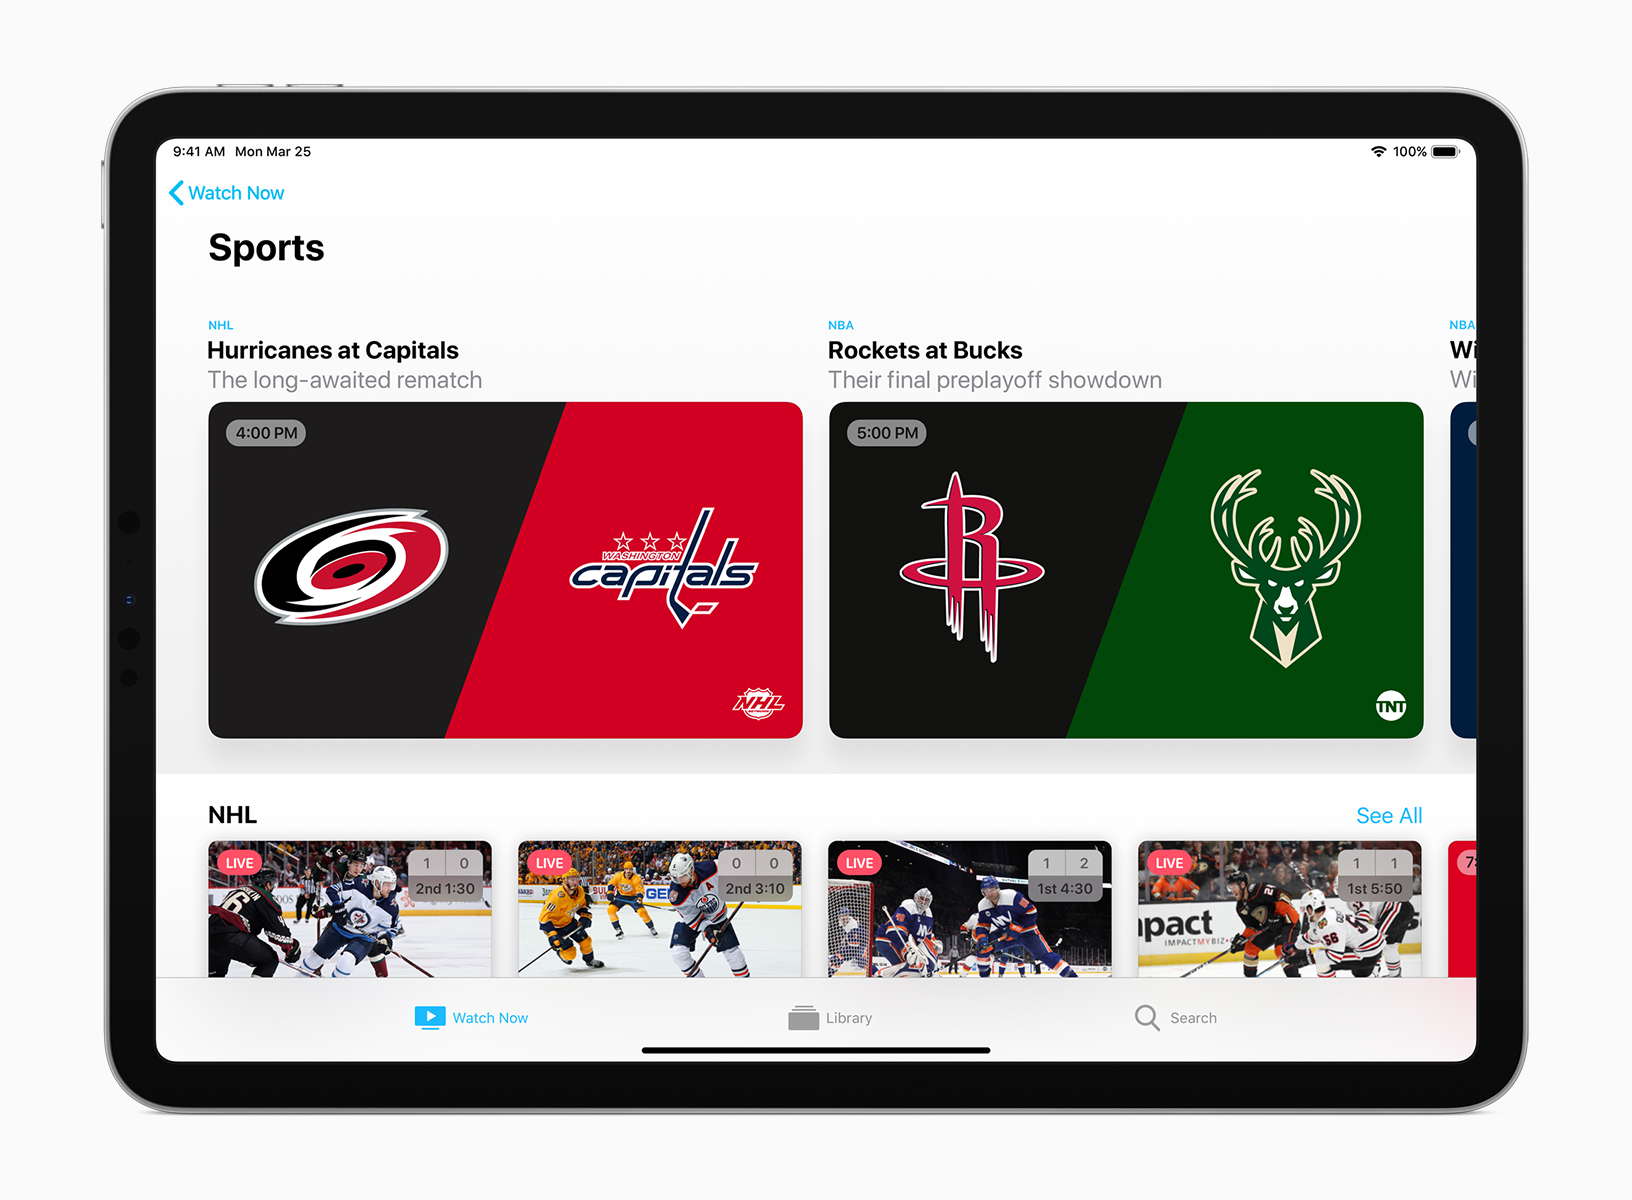 The new Apple TV+ app will give users access to exclusive original shows, movies, and documentaries this fall - Alvinology